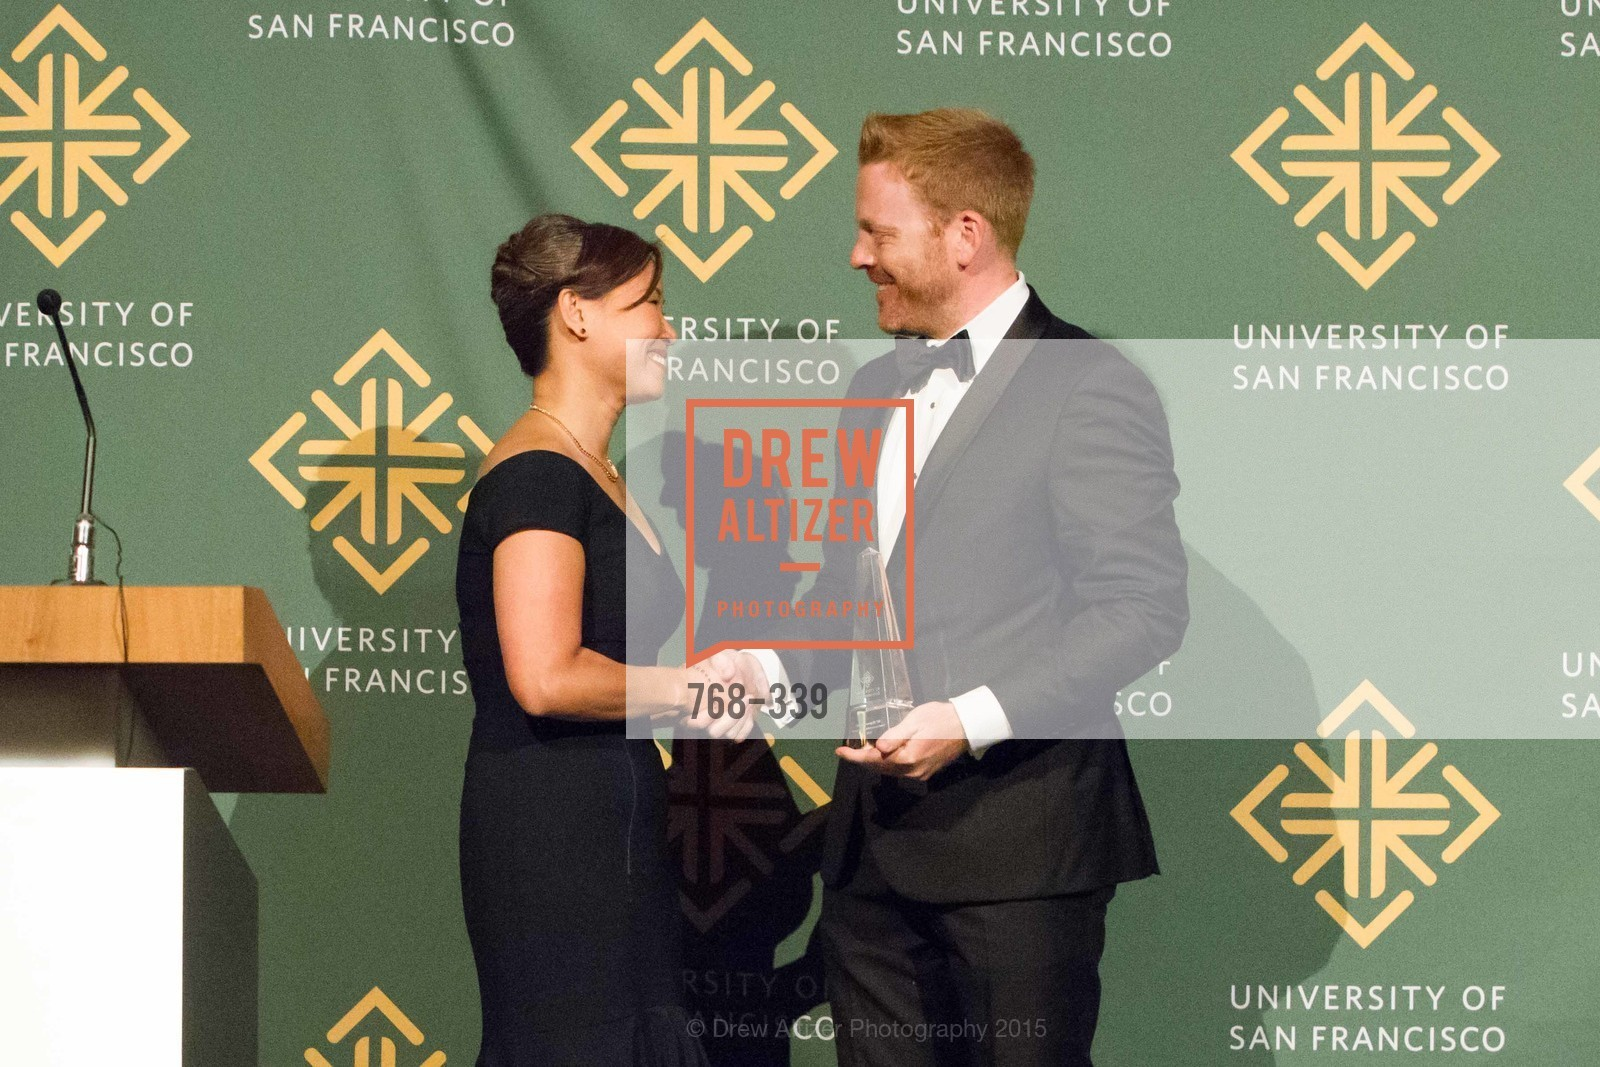 Jay Dillon, Doris Cheng, University of San Francisco Alumni Awards Gala 2015, University of San Francisco, October 2nd, 2015,Drew Altizer, Drew Altizer Photography, full-service agency, private events, San Francisco photographer, photographer california